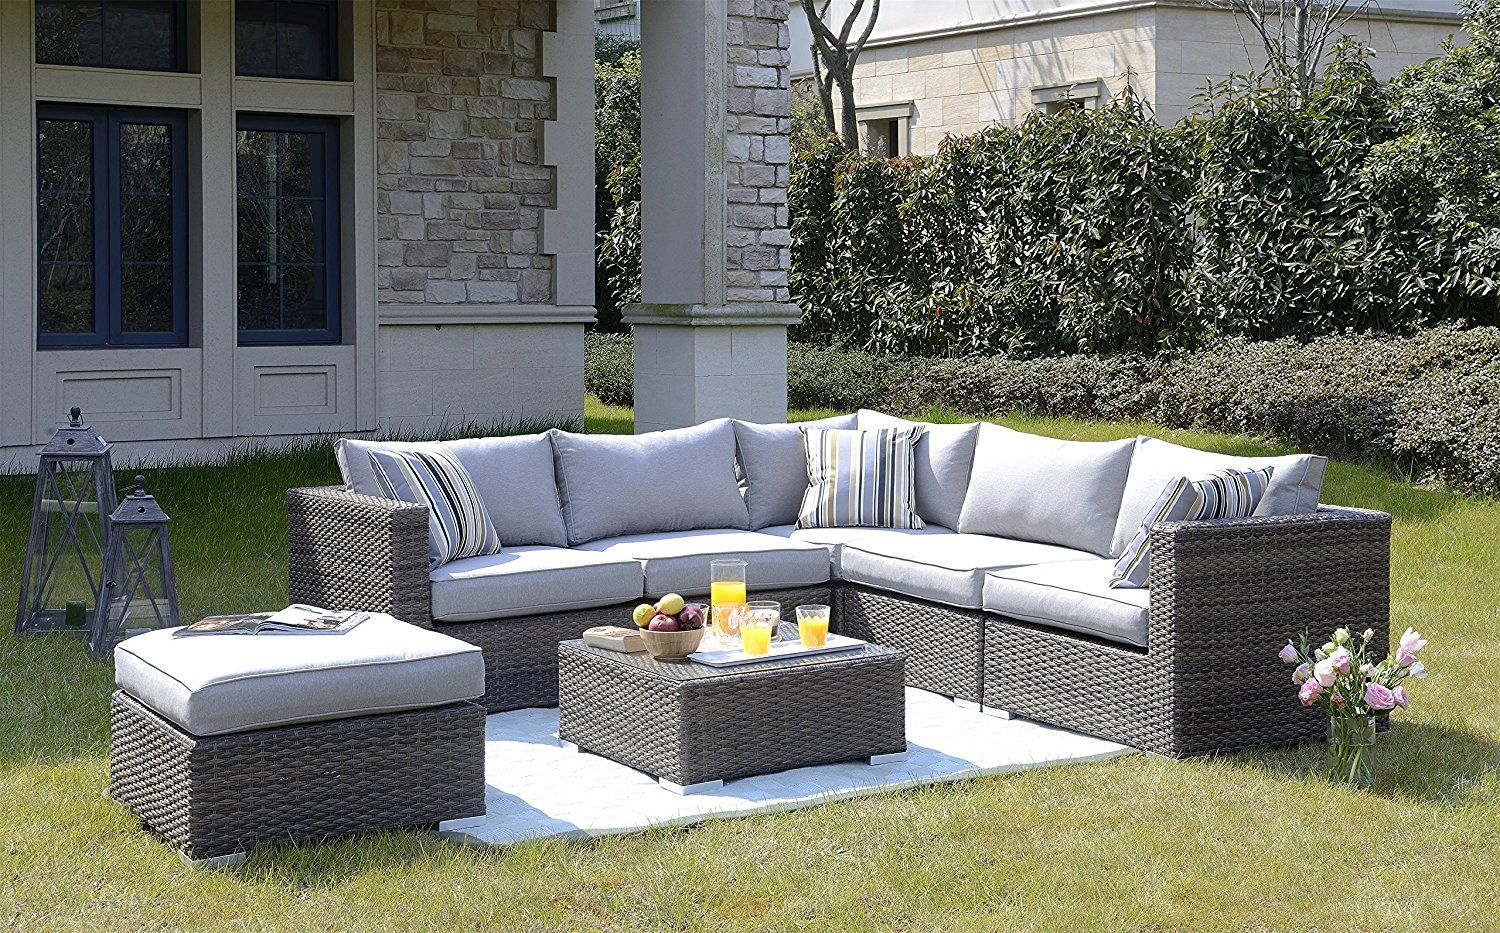 Homewell Outdoor Wicker Lounge Conversation Sofa Set With L Shaped Sofa Table With Glass Top And Cushioned Ottoman Brown Outdoor Wicker L Shaped Sofa Outdoor